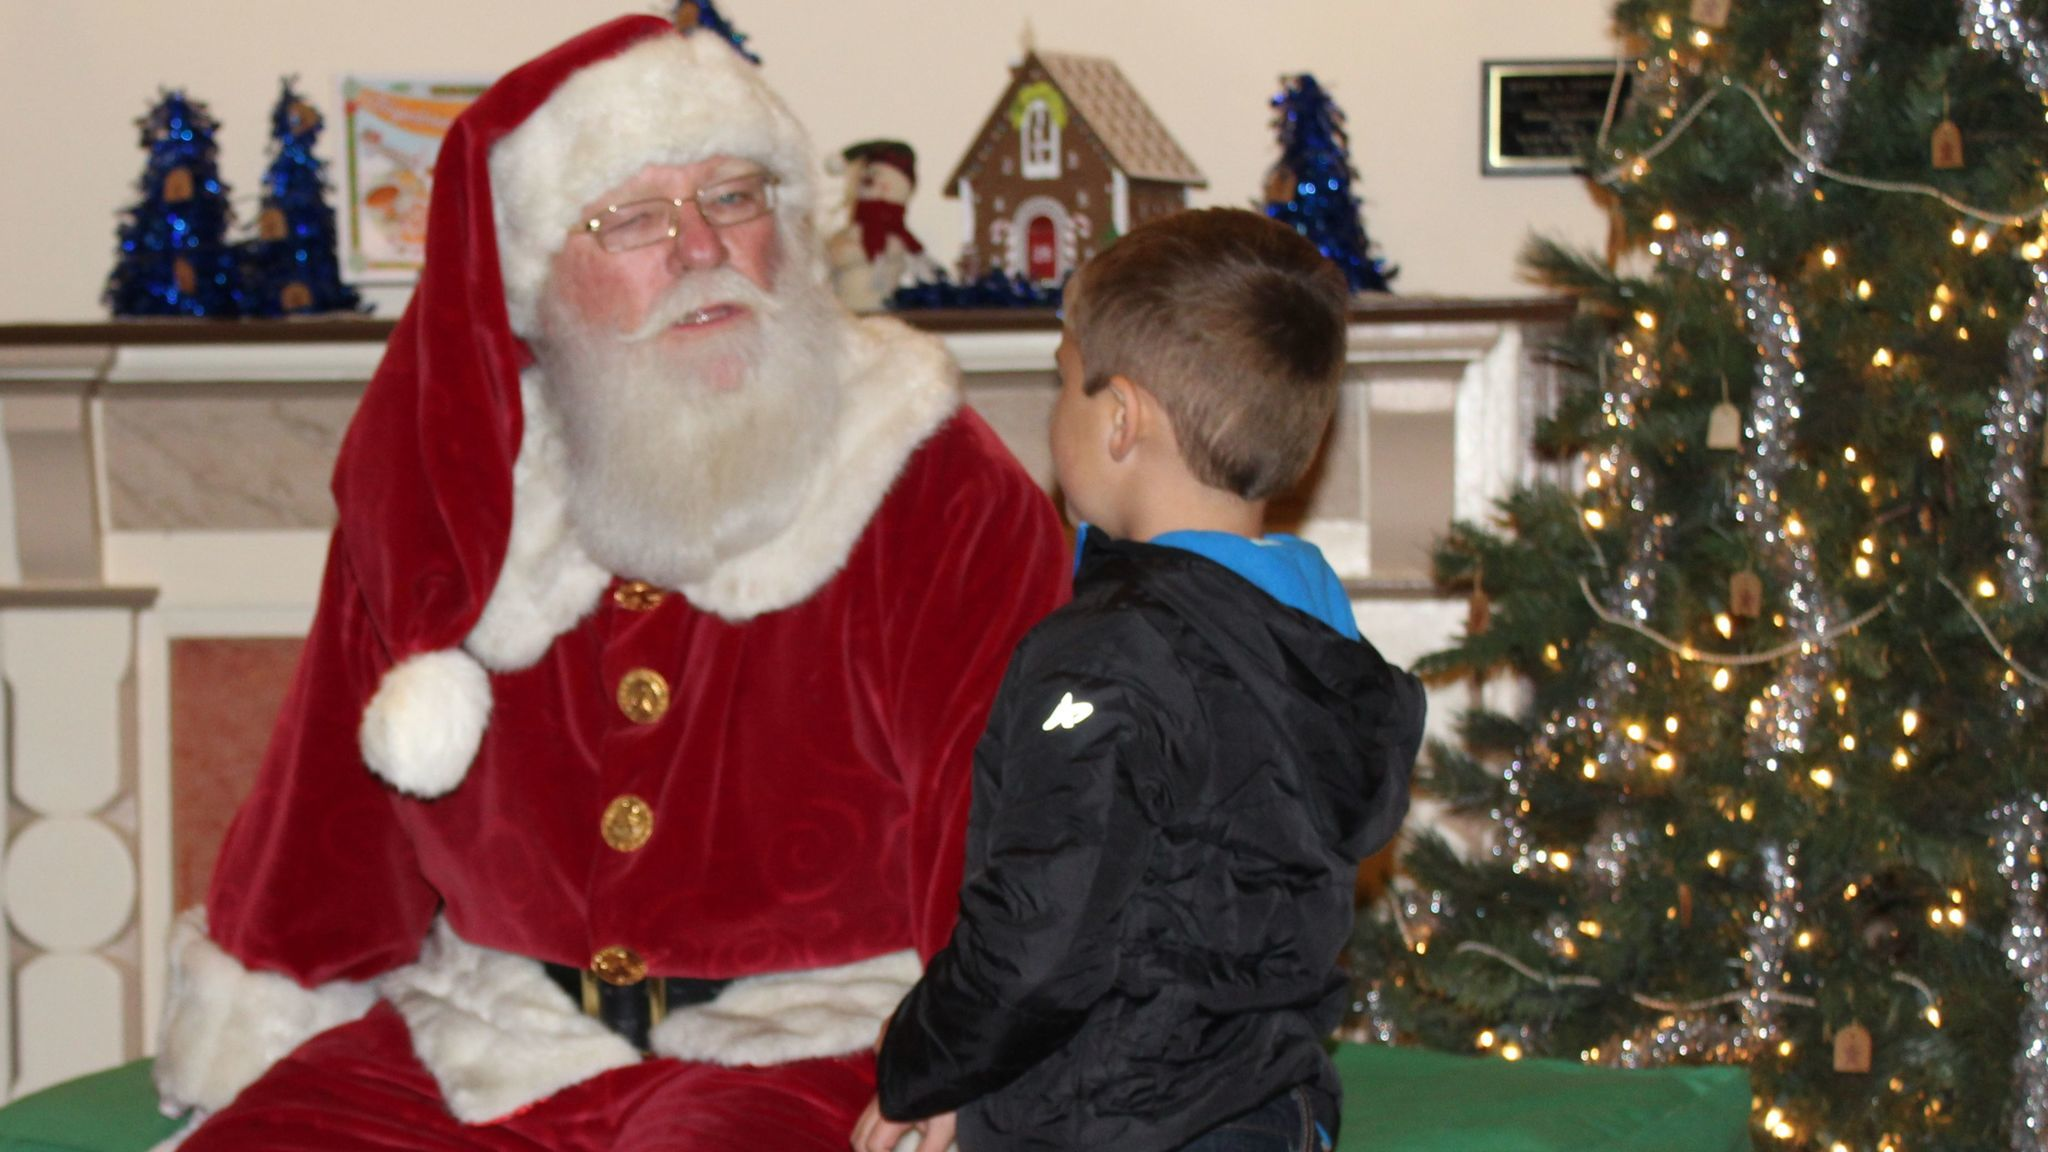 Brayden Whitworth, 5, tells Santa he wants toys lizards for Christmas.